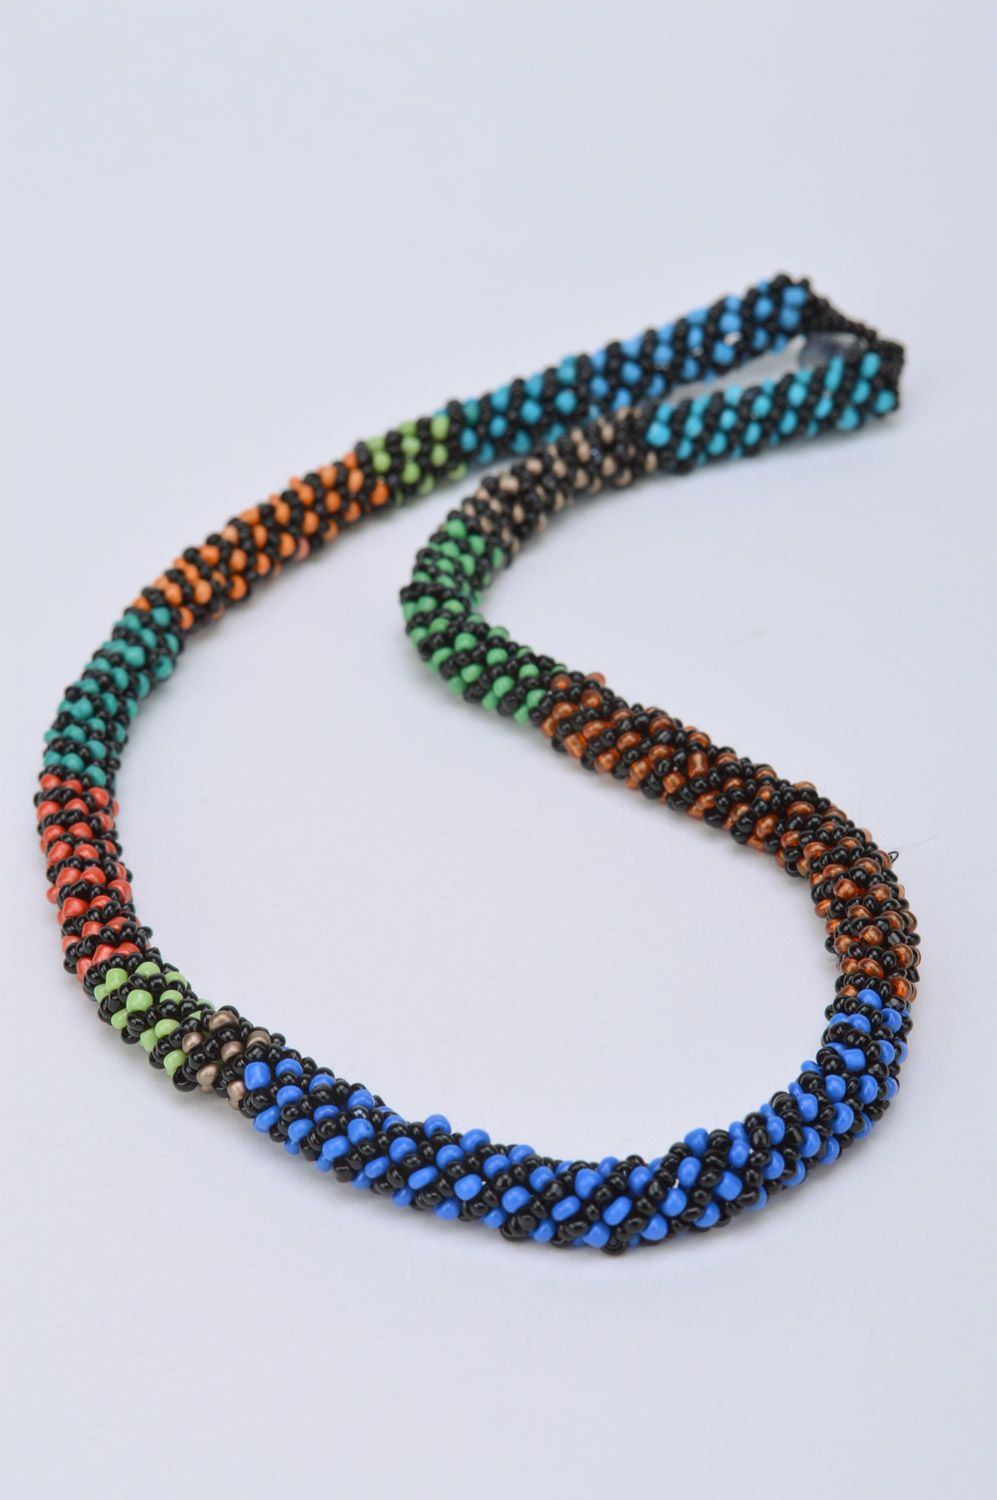 Handmade designer colorful beaded cord necklace Savanna for elegant ladies photo 5